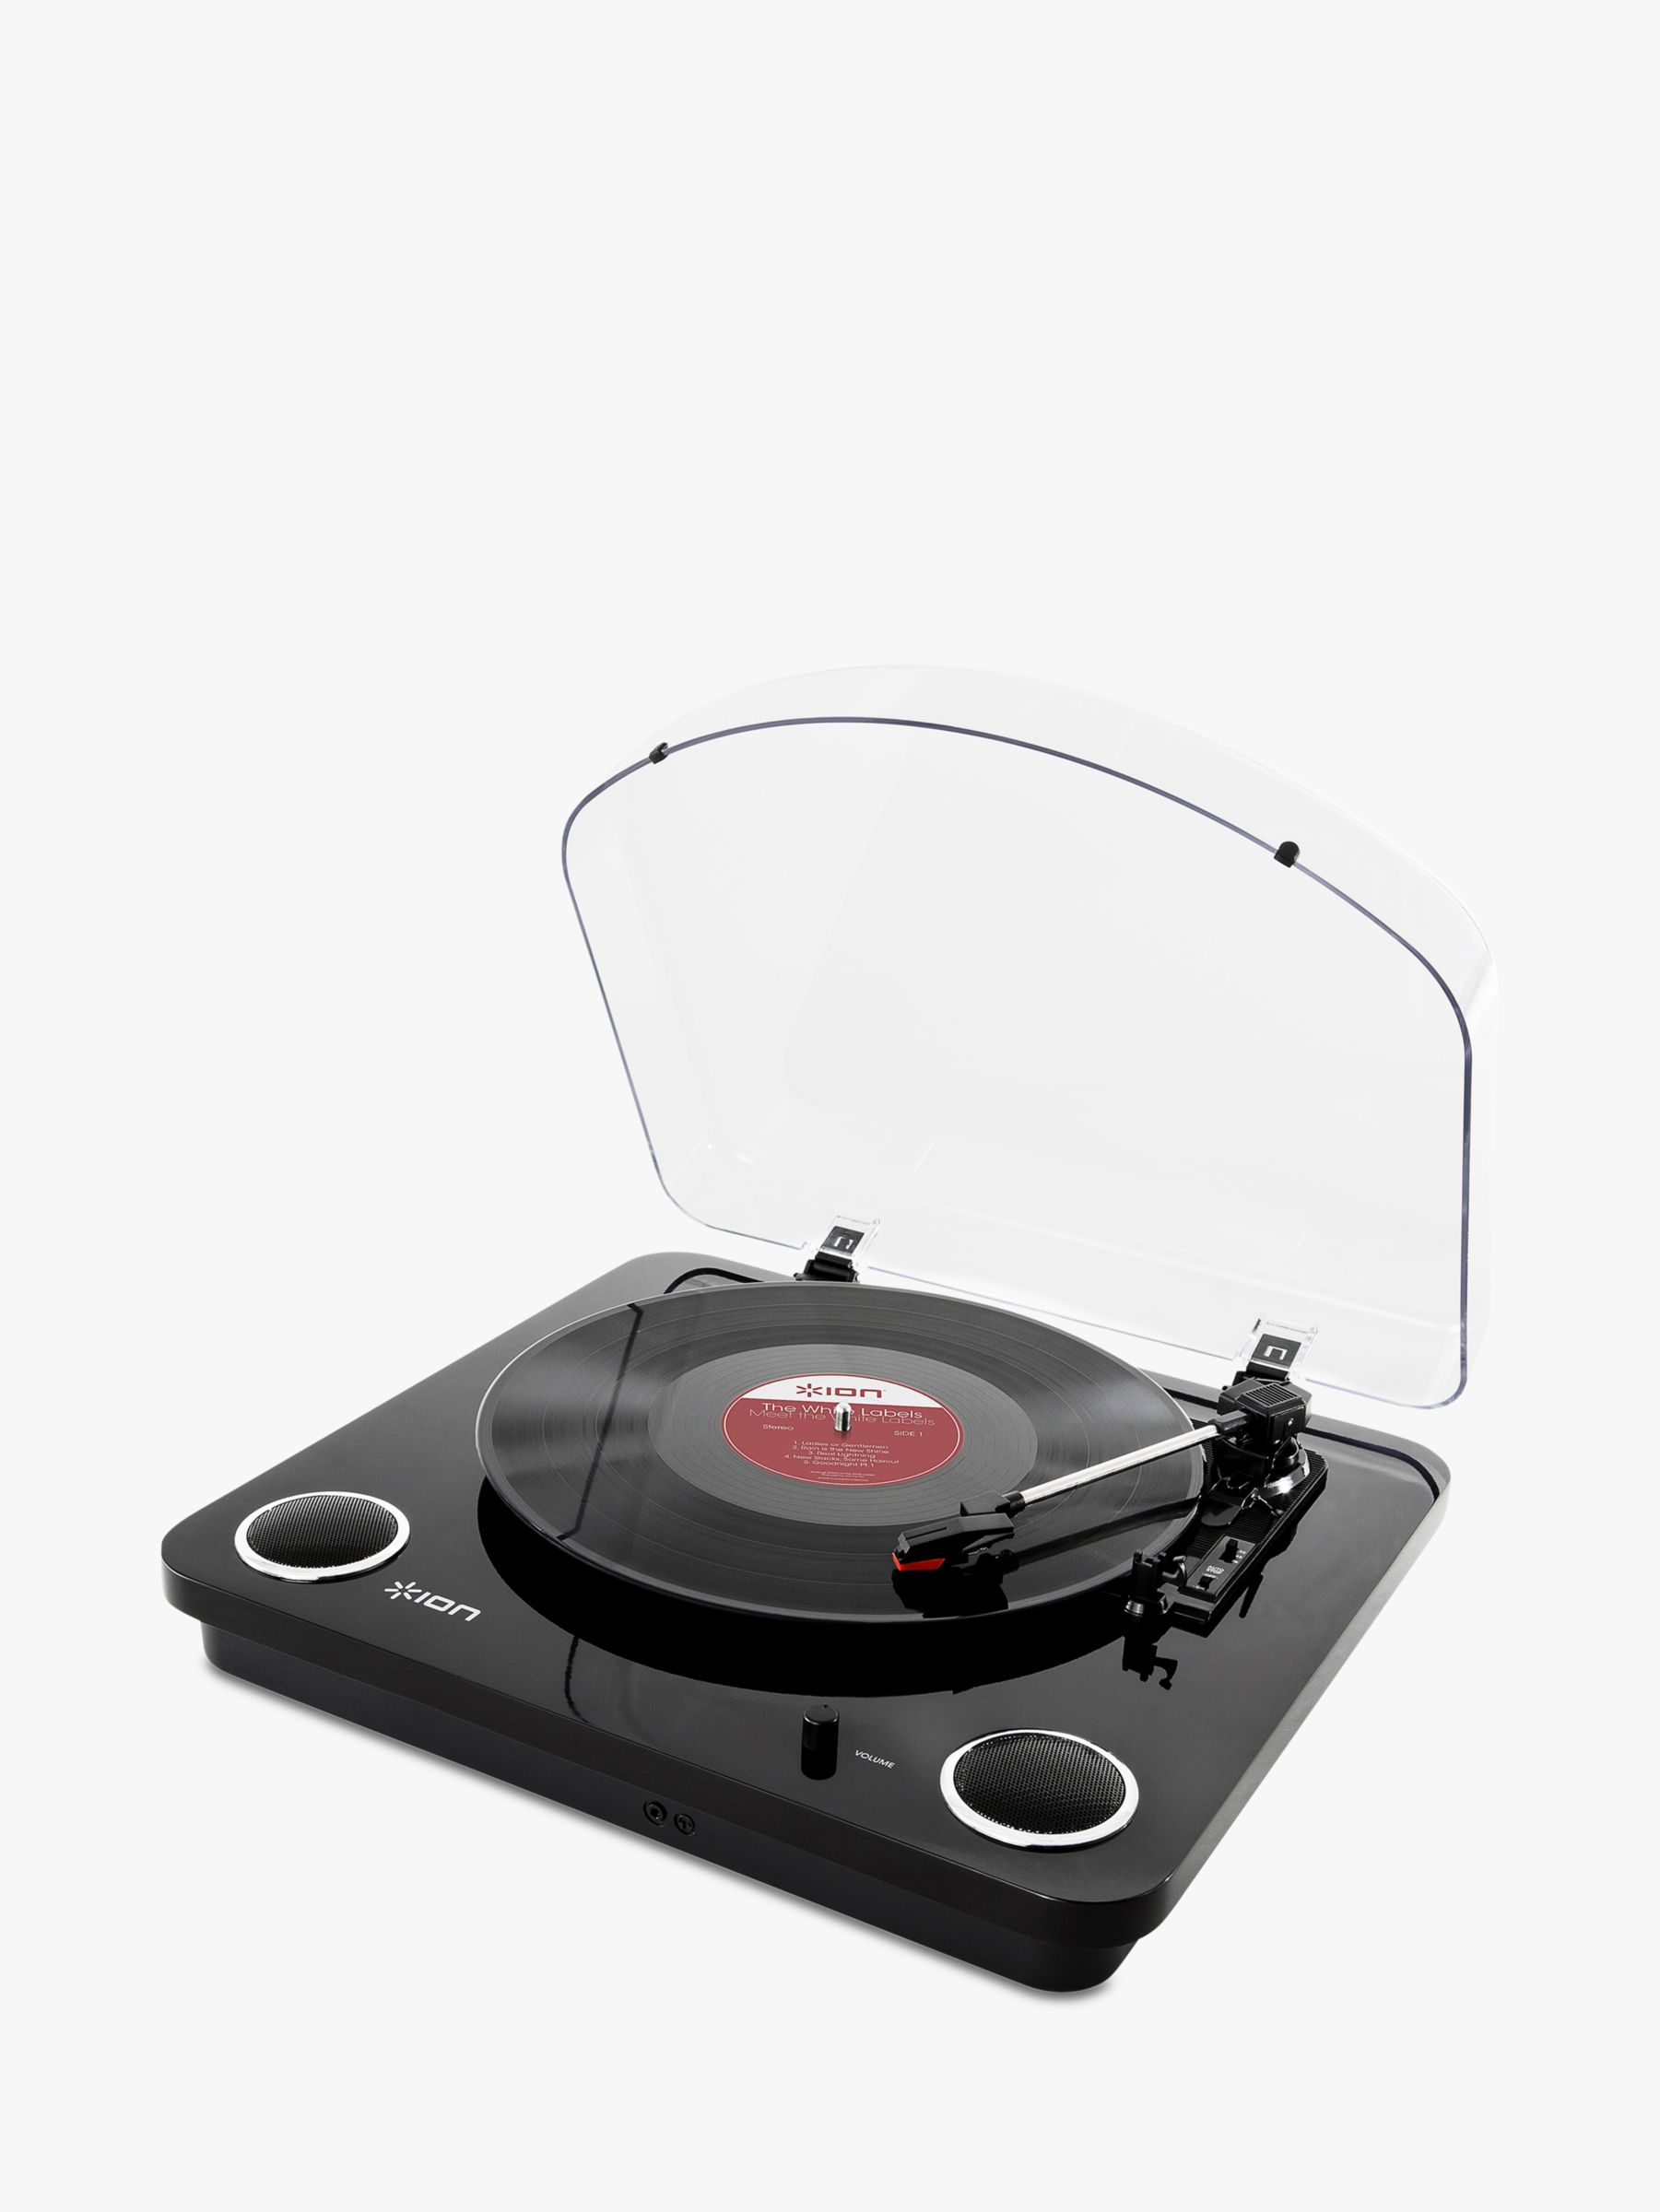 Ion ION Max LP Three-Speed USB Turntable With Built-In Stereo Speakers, Piano Black